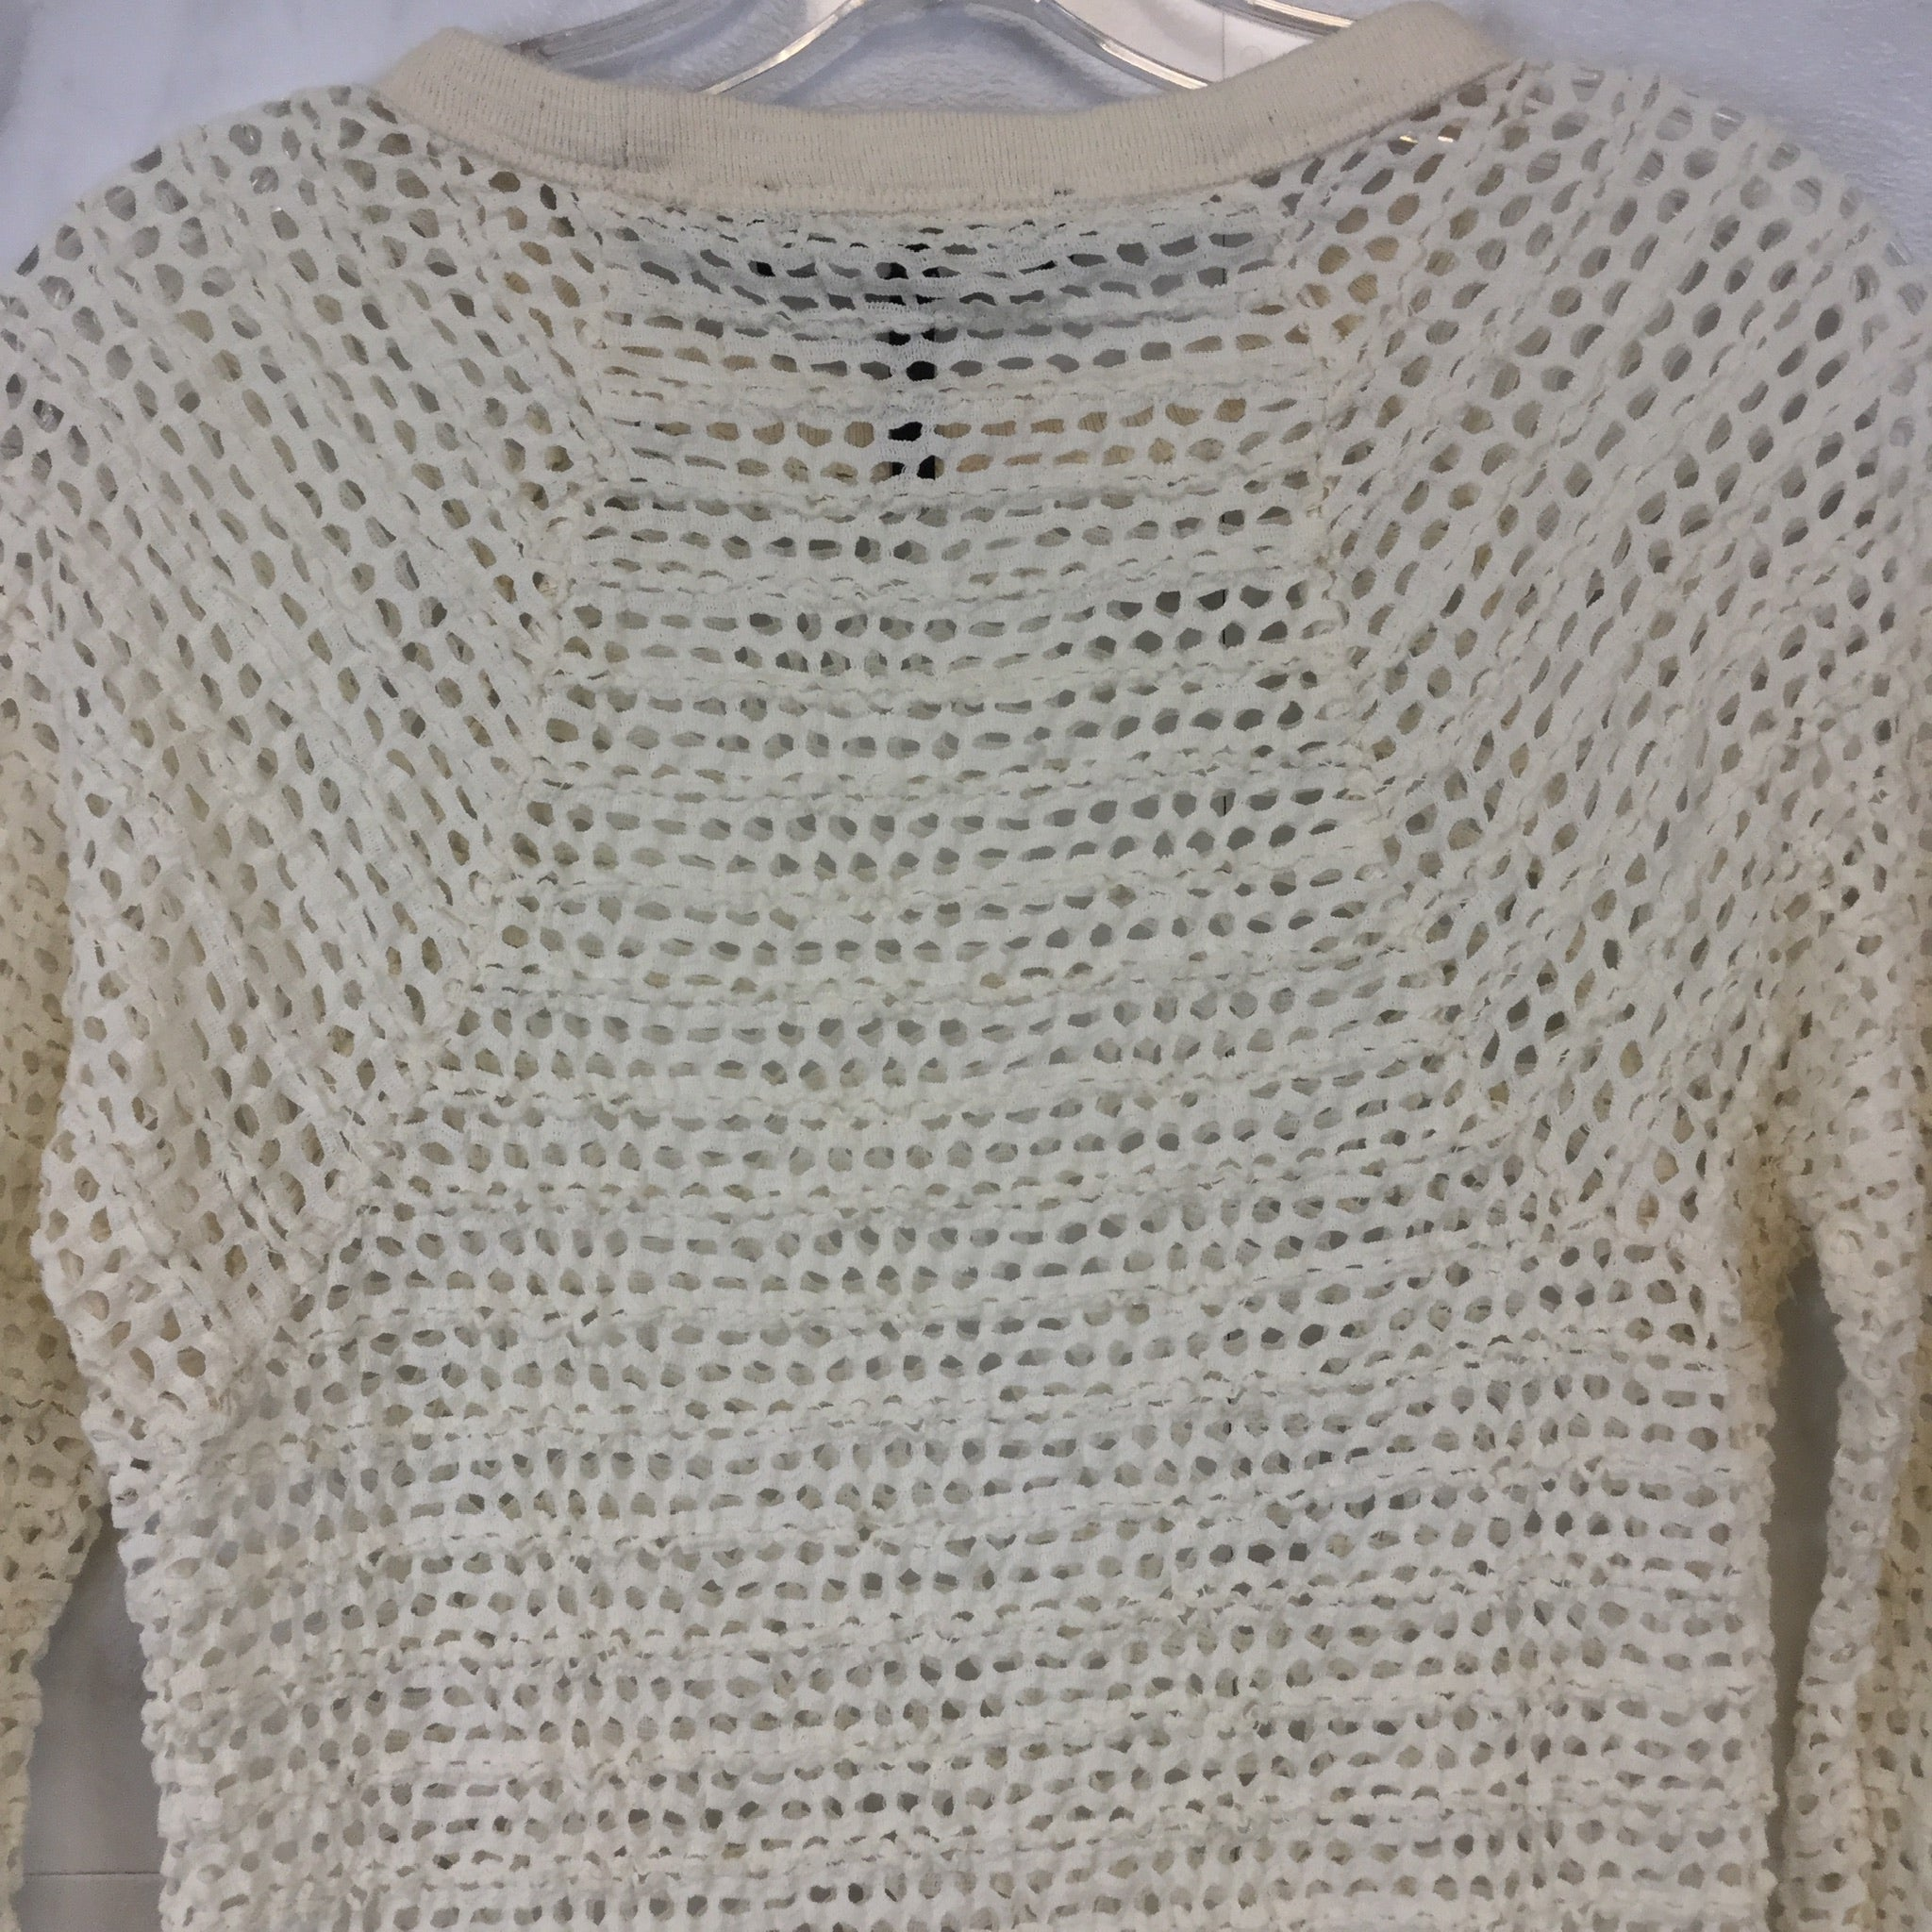 Isabel Marant Open Knit Top - size 3